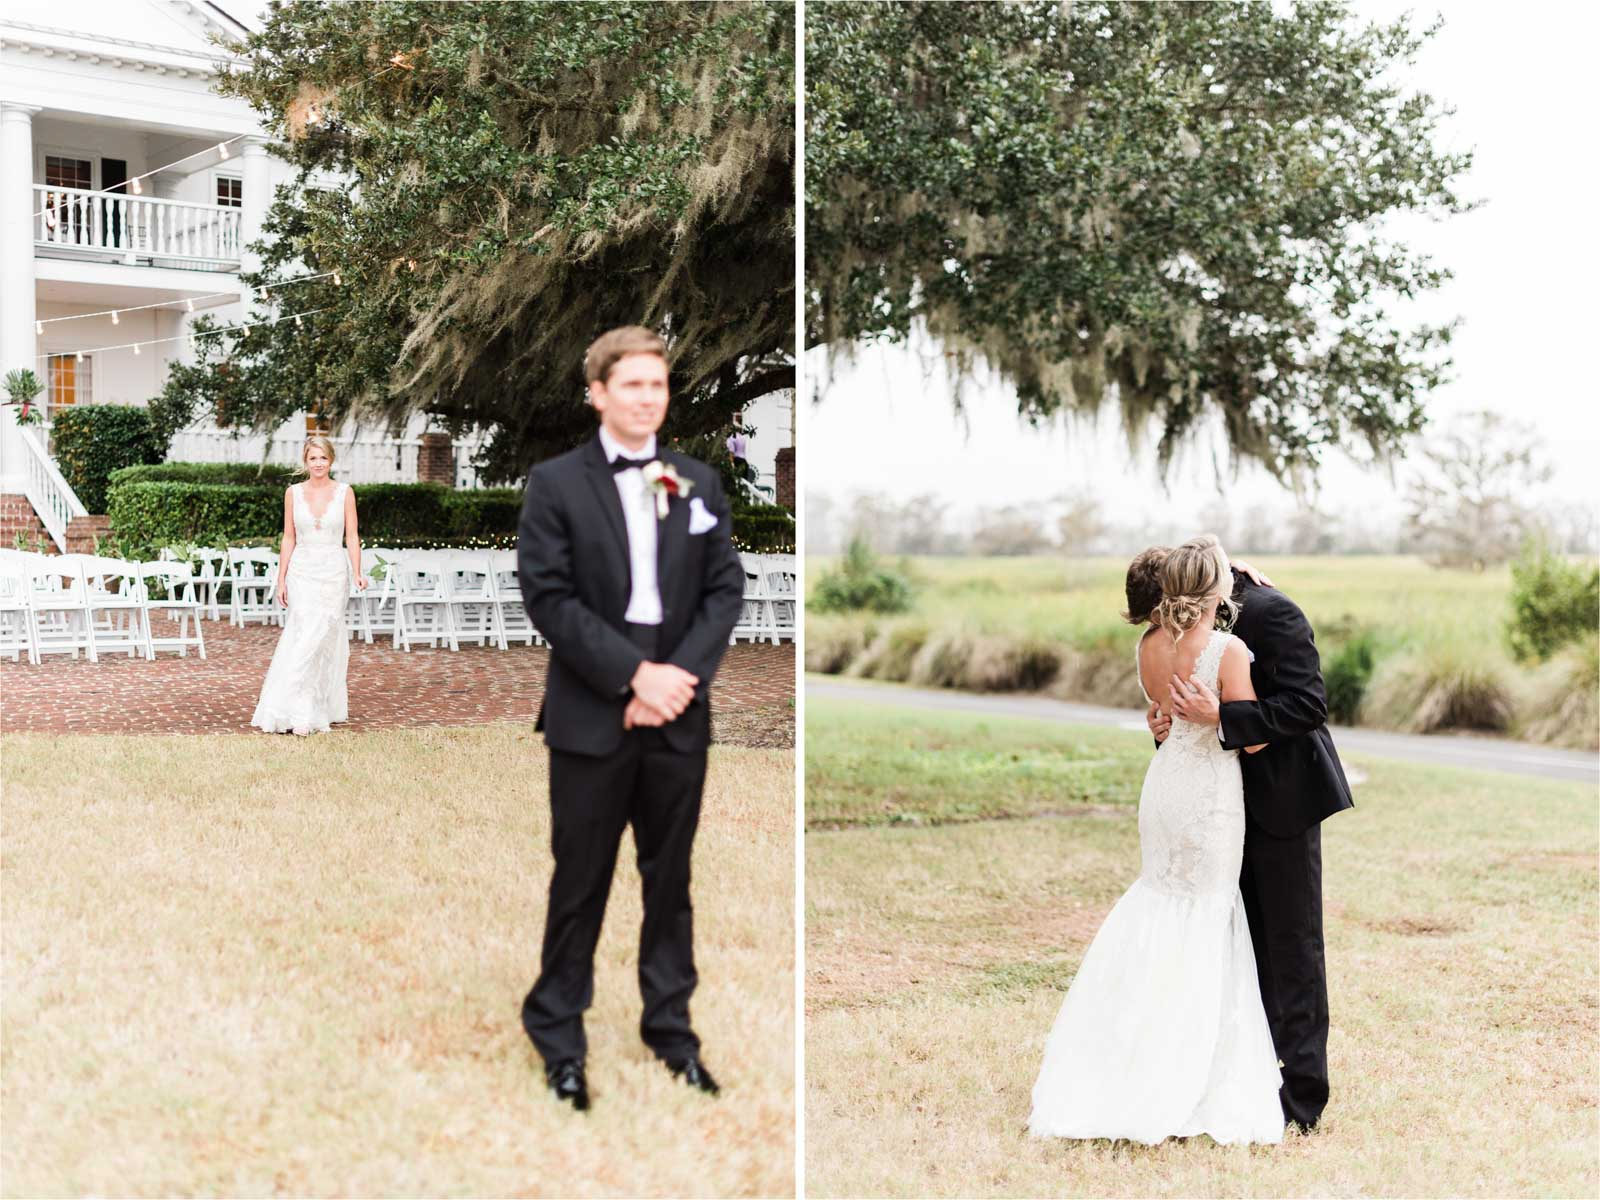 Wedding at Heritage Plantation in Pawley's Island_Markie Walden Photo-62.jpg